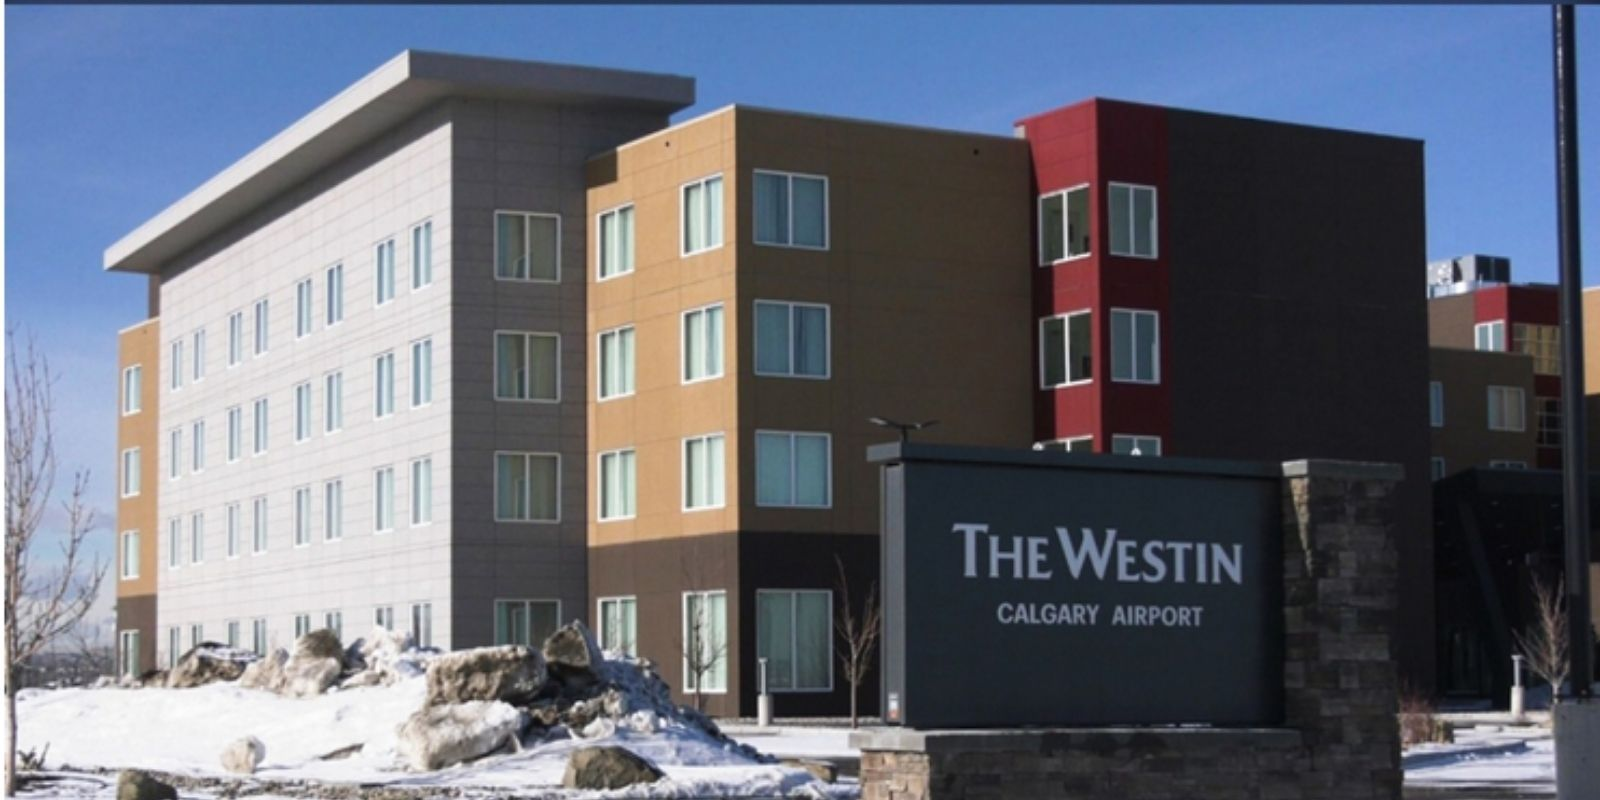 Canadian federal court rules Trudeau COVID hotels violate Charter protection against arbitrary detention